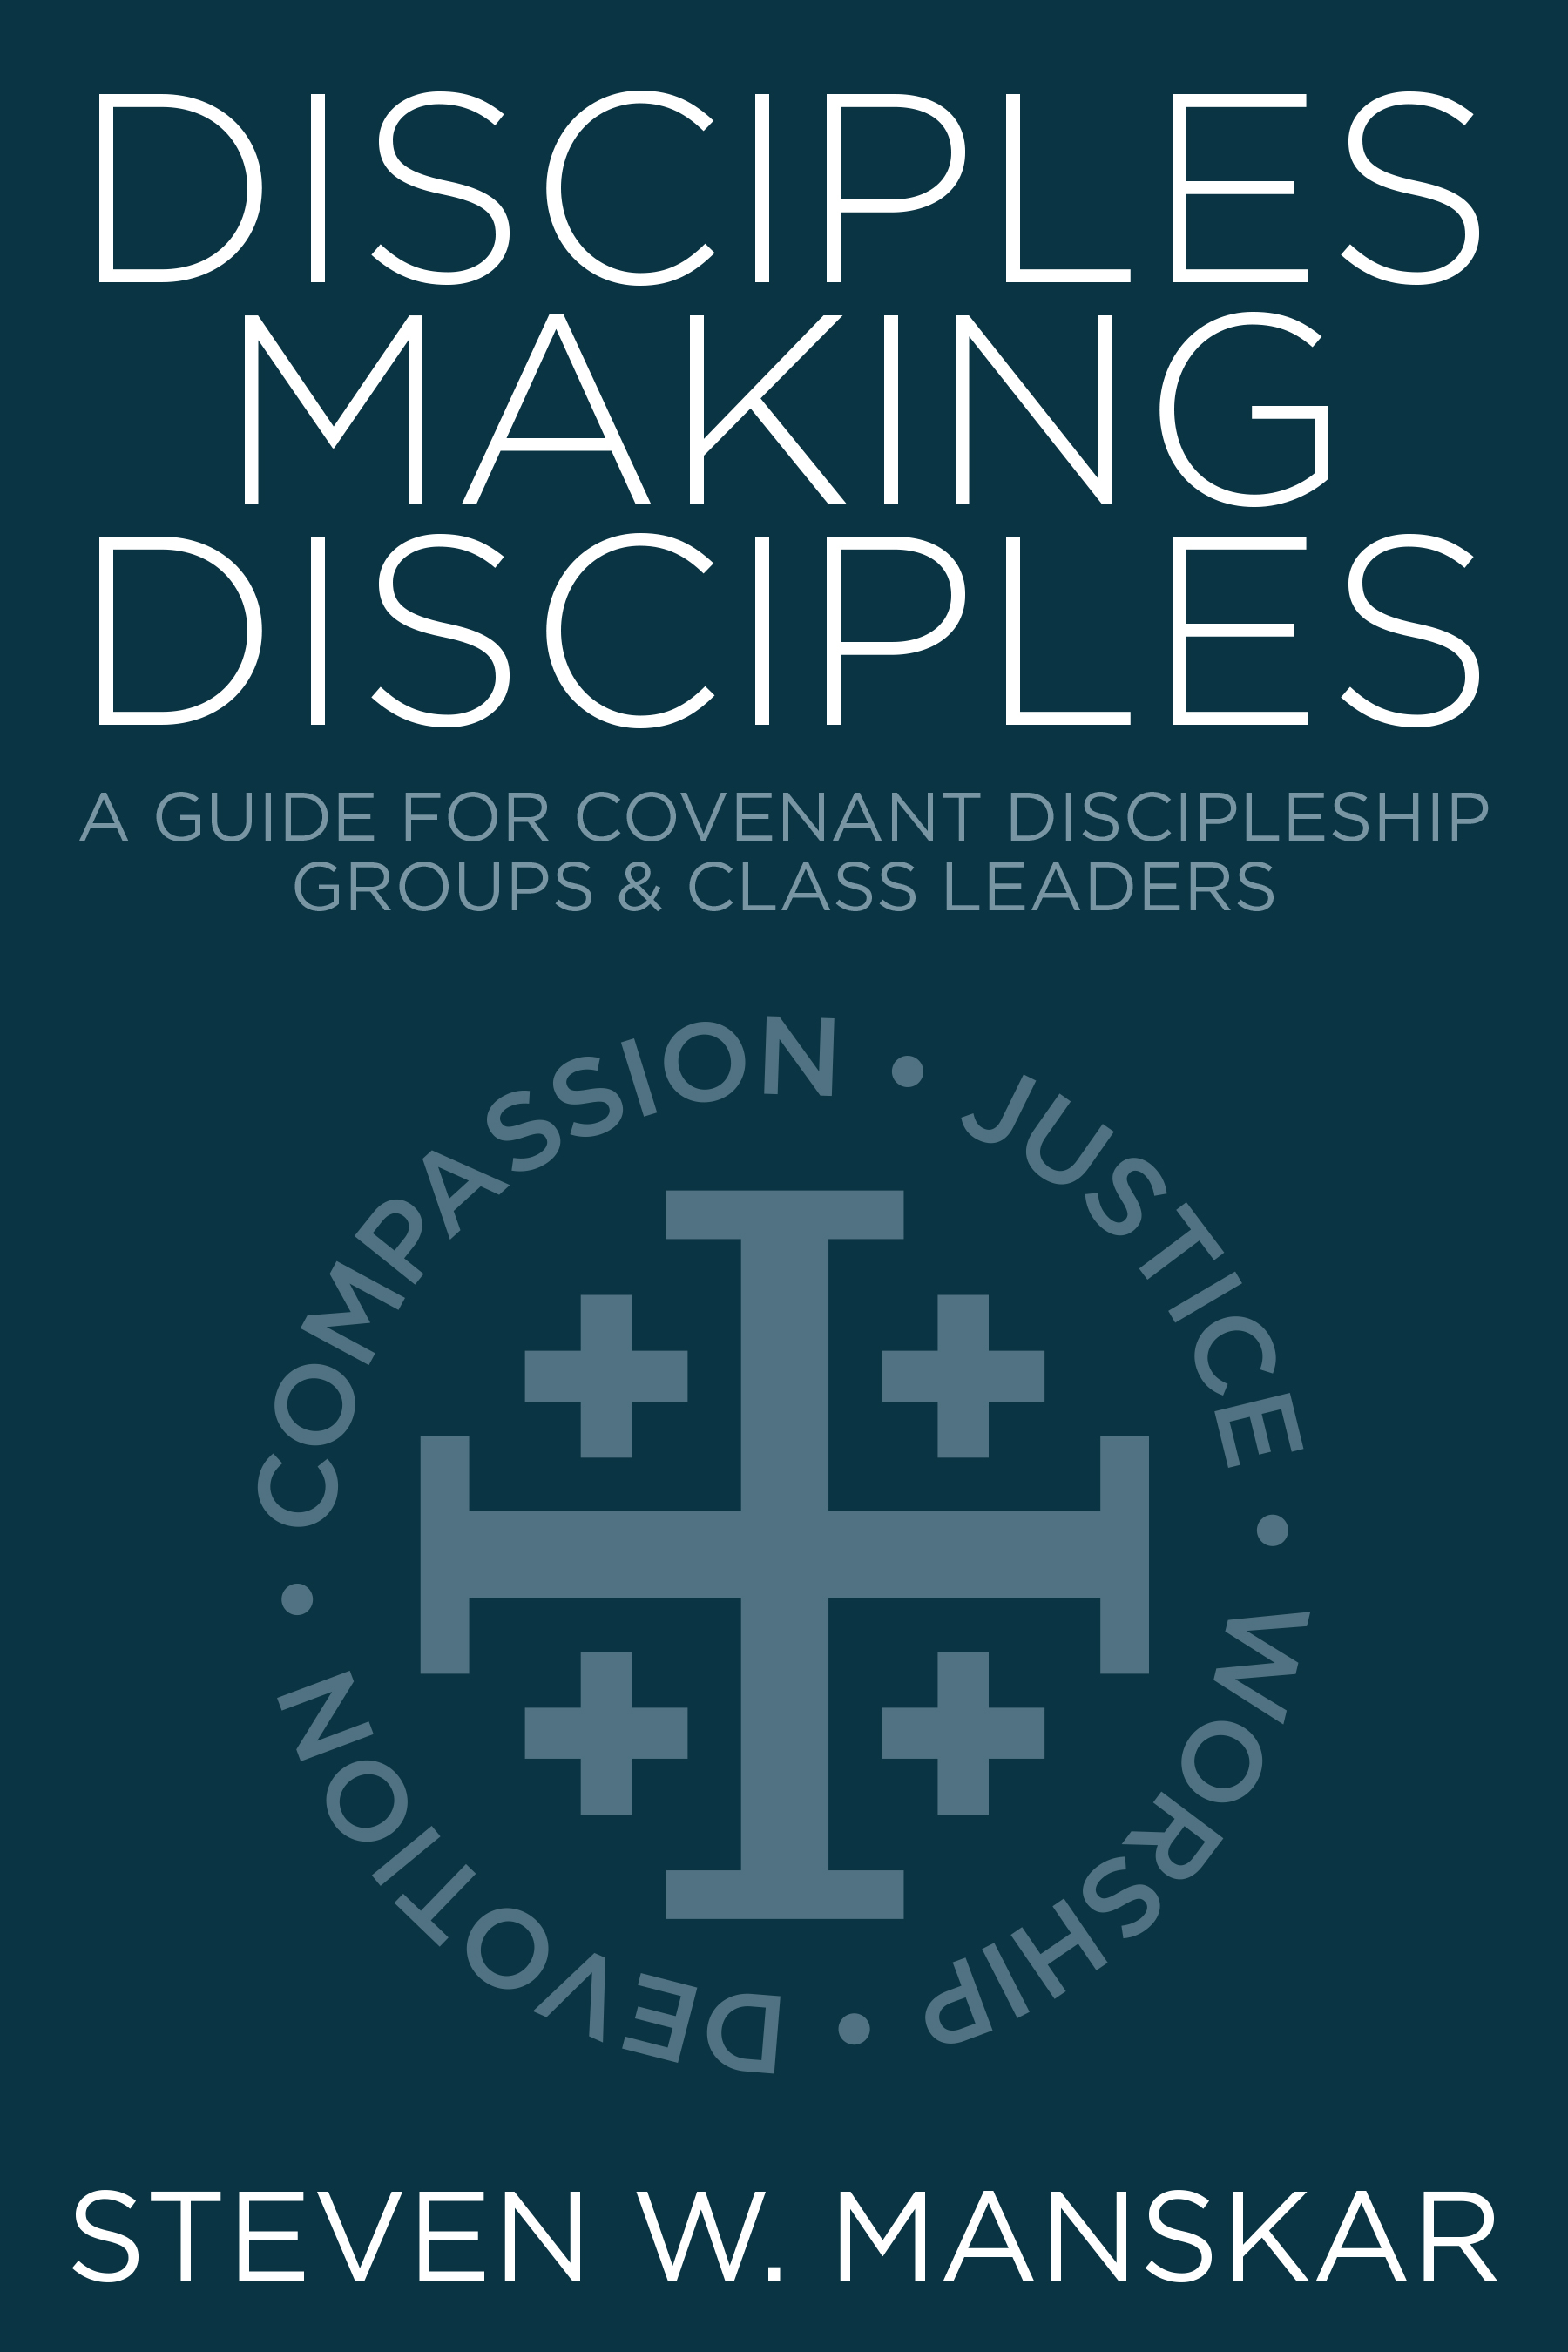 Disciples Making Disciples